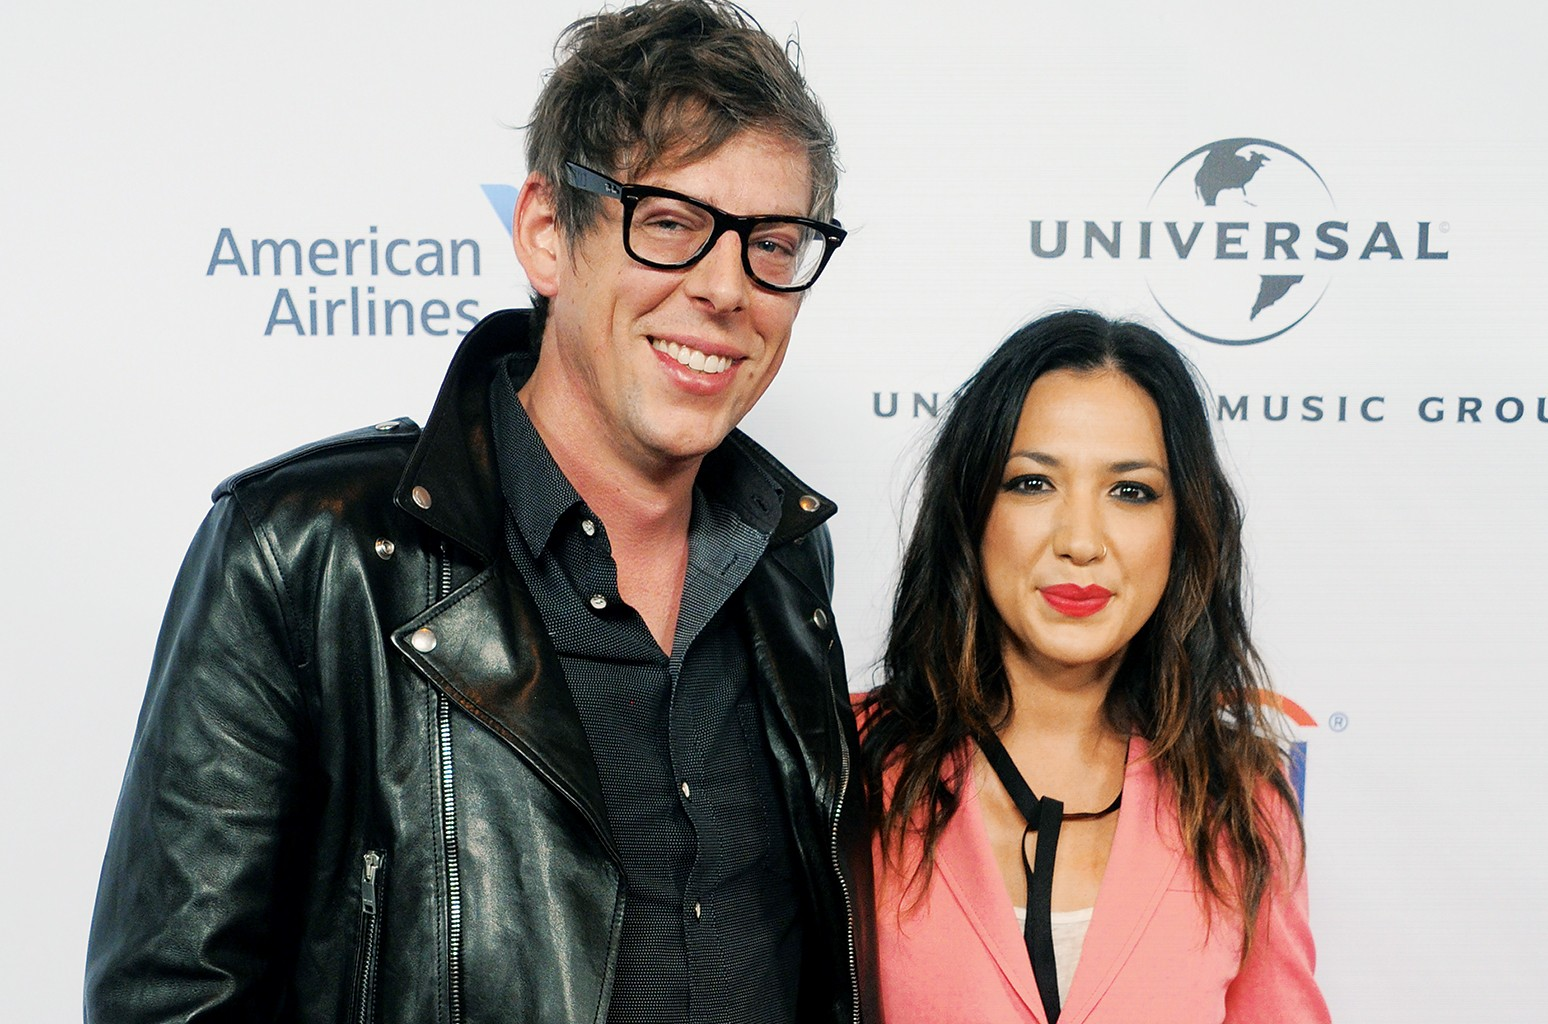 Michelle Branch and Patrick Carney of The Black Keys arrive at Universal Music Group's 2016 Grammy After Party at The Theatre At The Ace Hotel on Feb. 15, 2016 in Los Angeles, Calif.